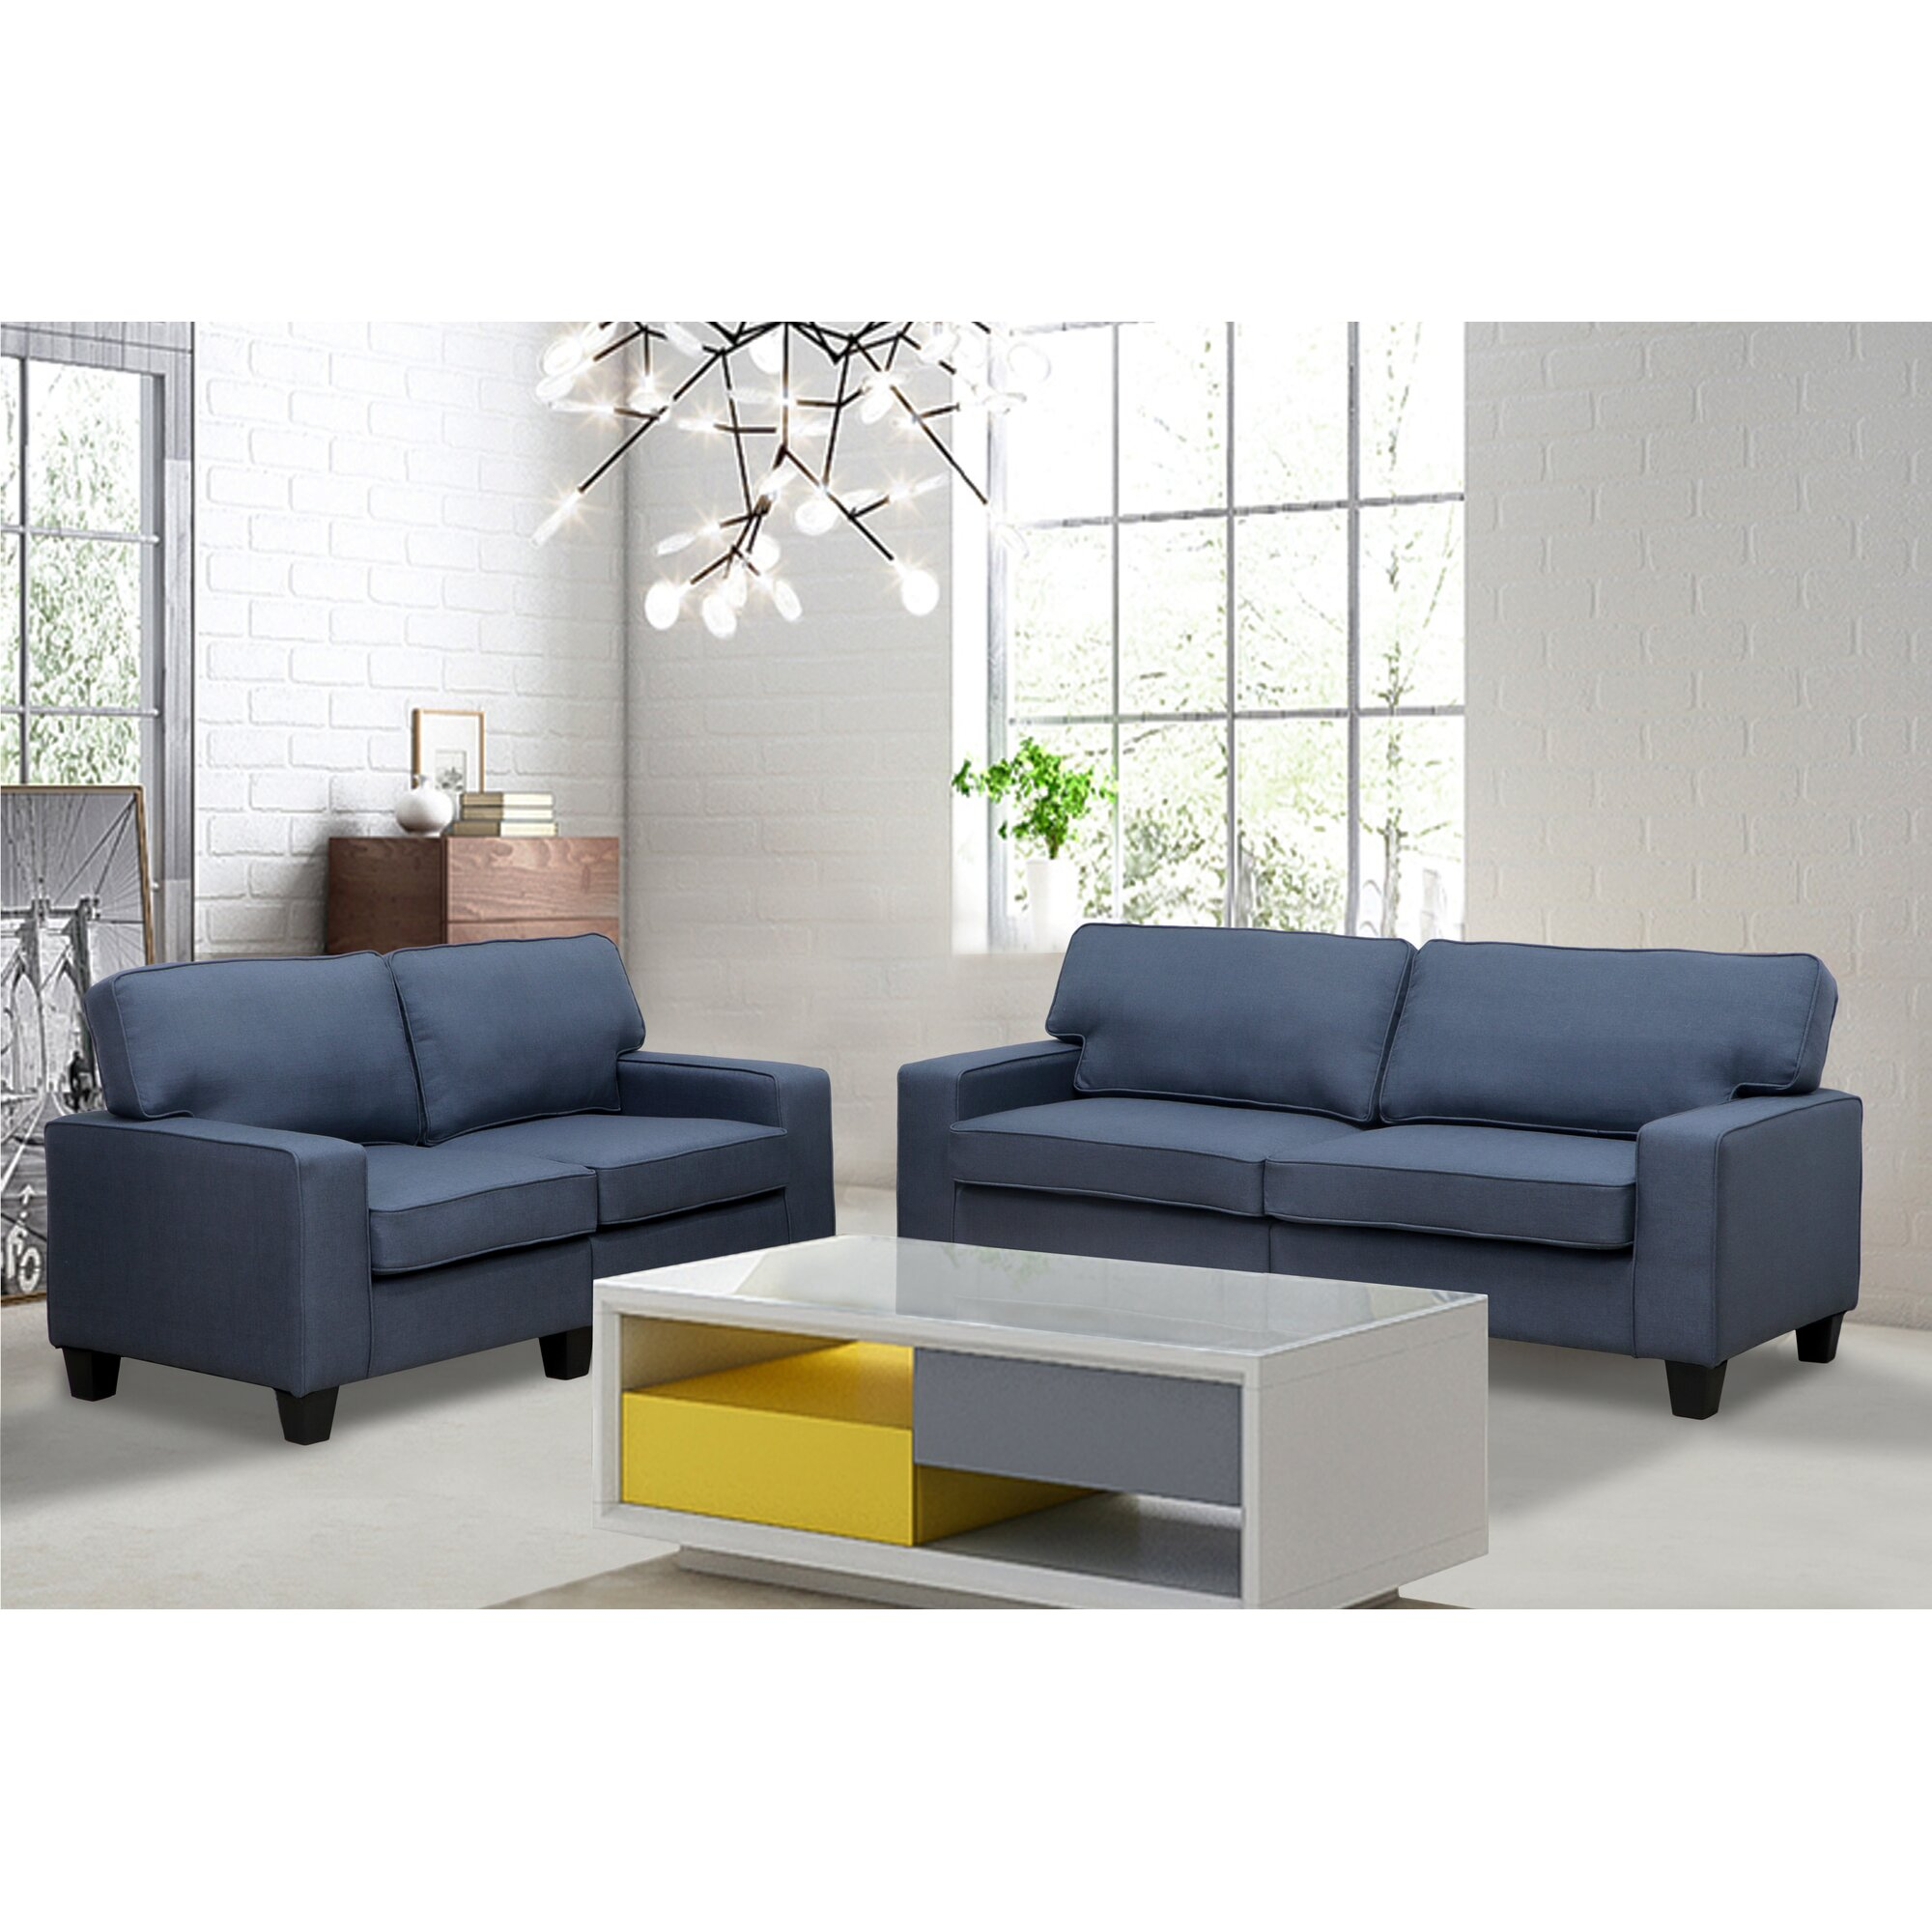 Varick Gallery Bittle Modern 2 Piece Living Room Sofa And